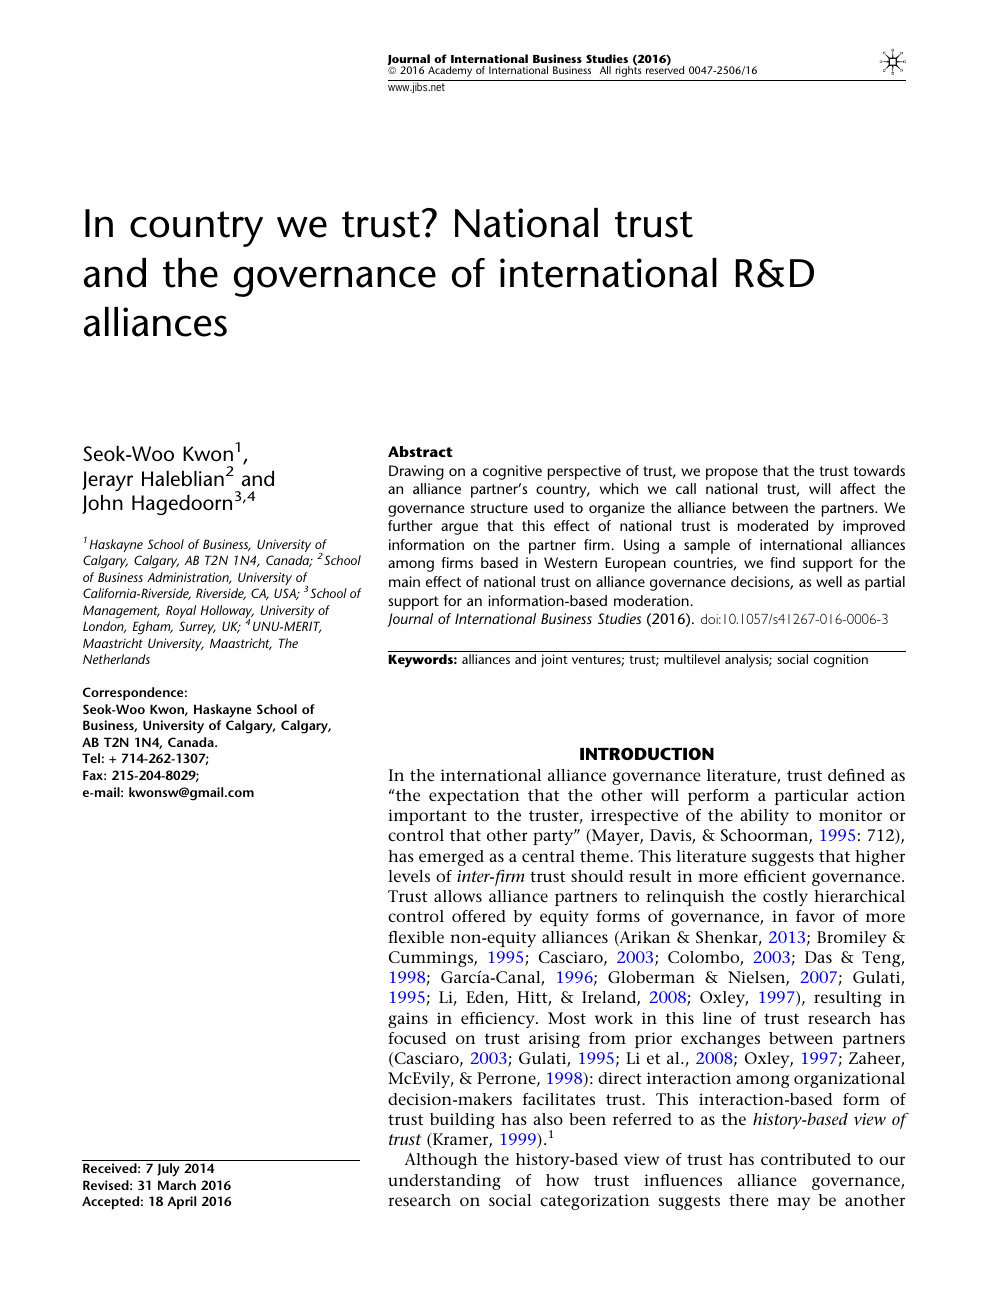 In country we trust? National trust and the governance of